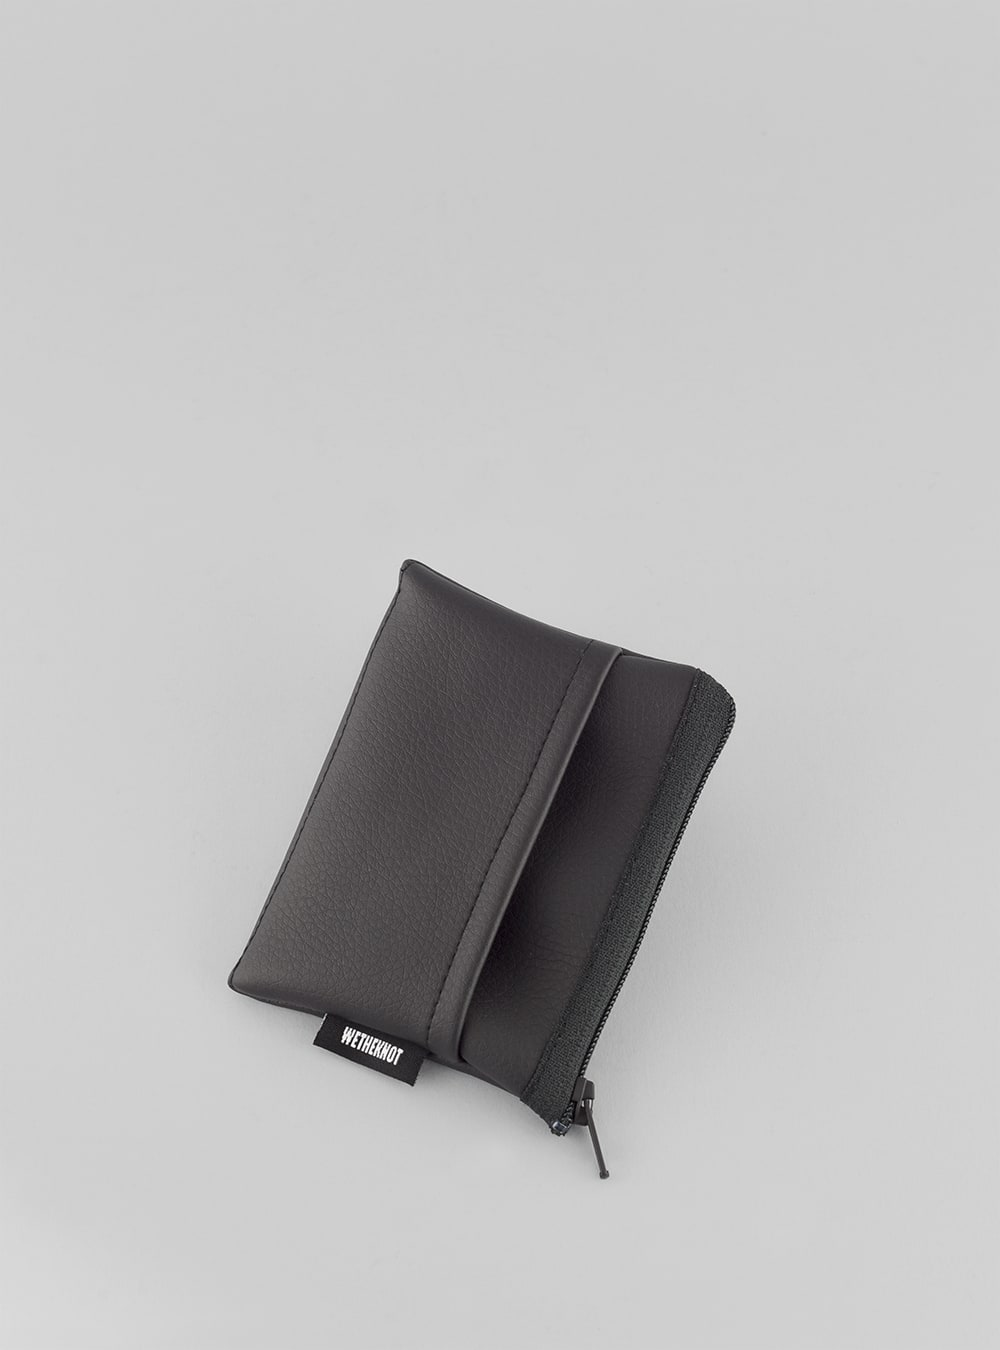 Card holder (black) in vegan leaather, made in Portugal by wetheknot.